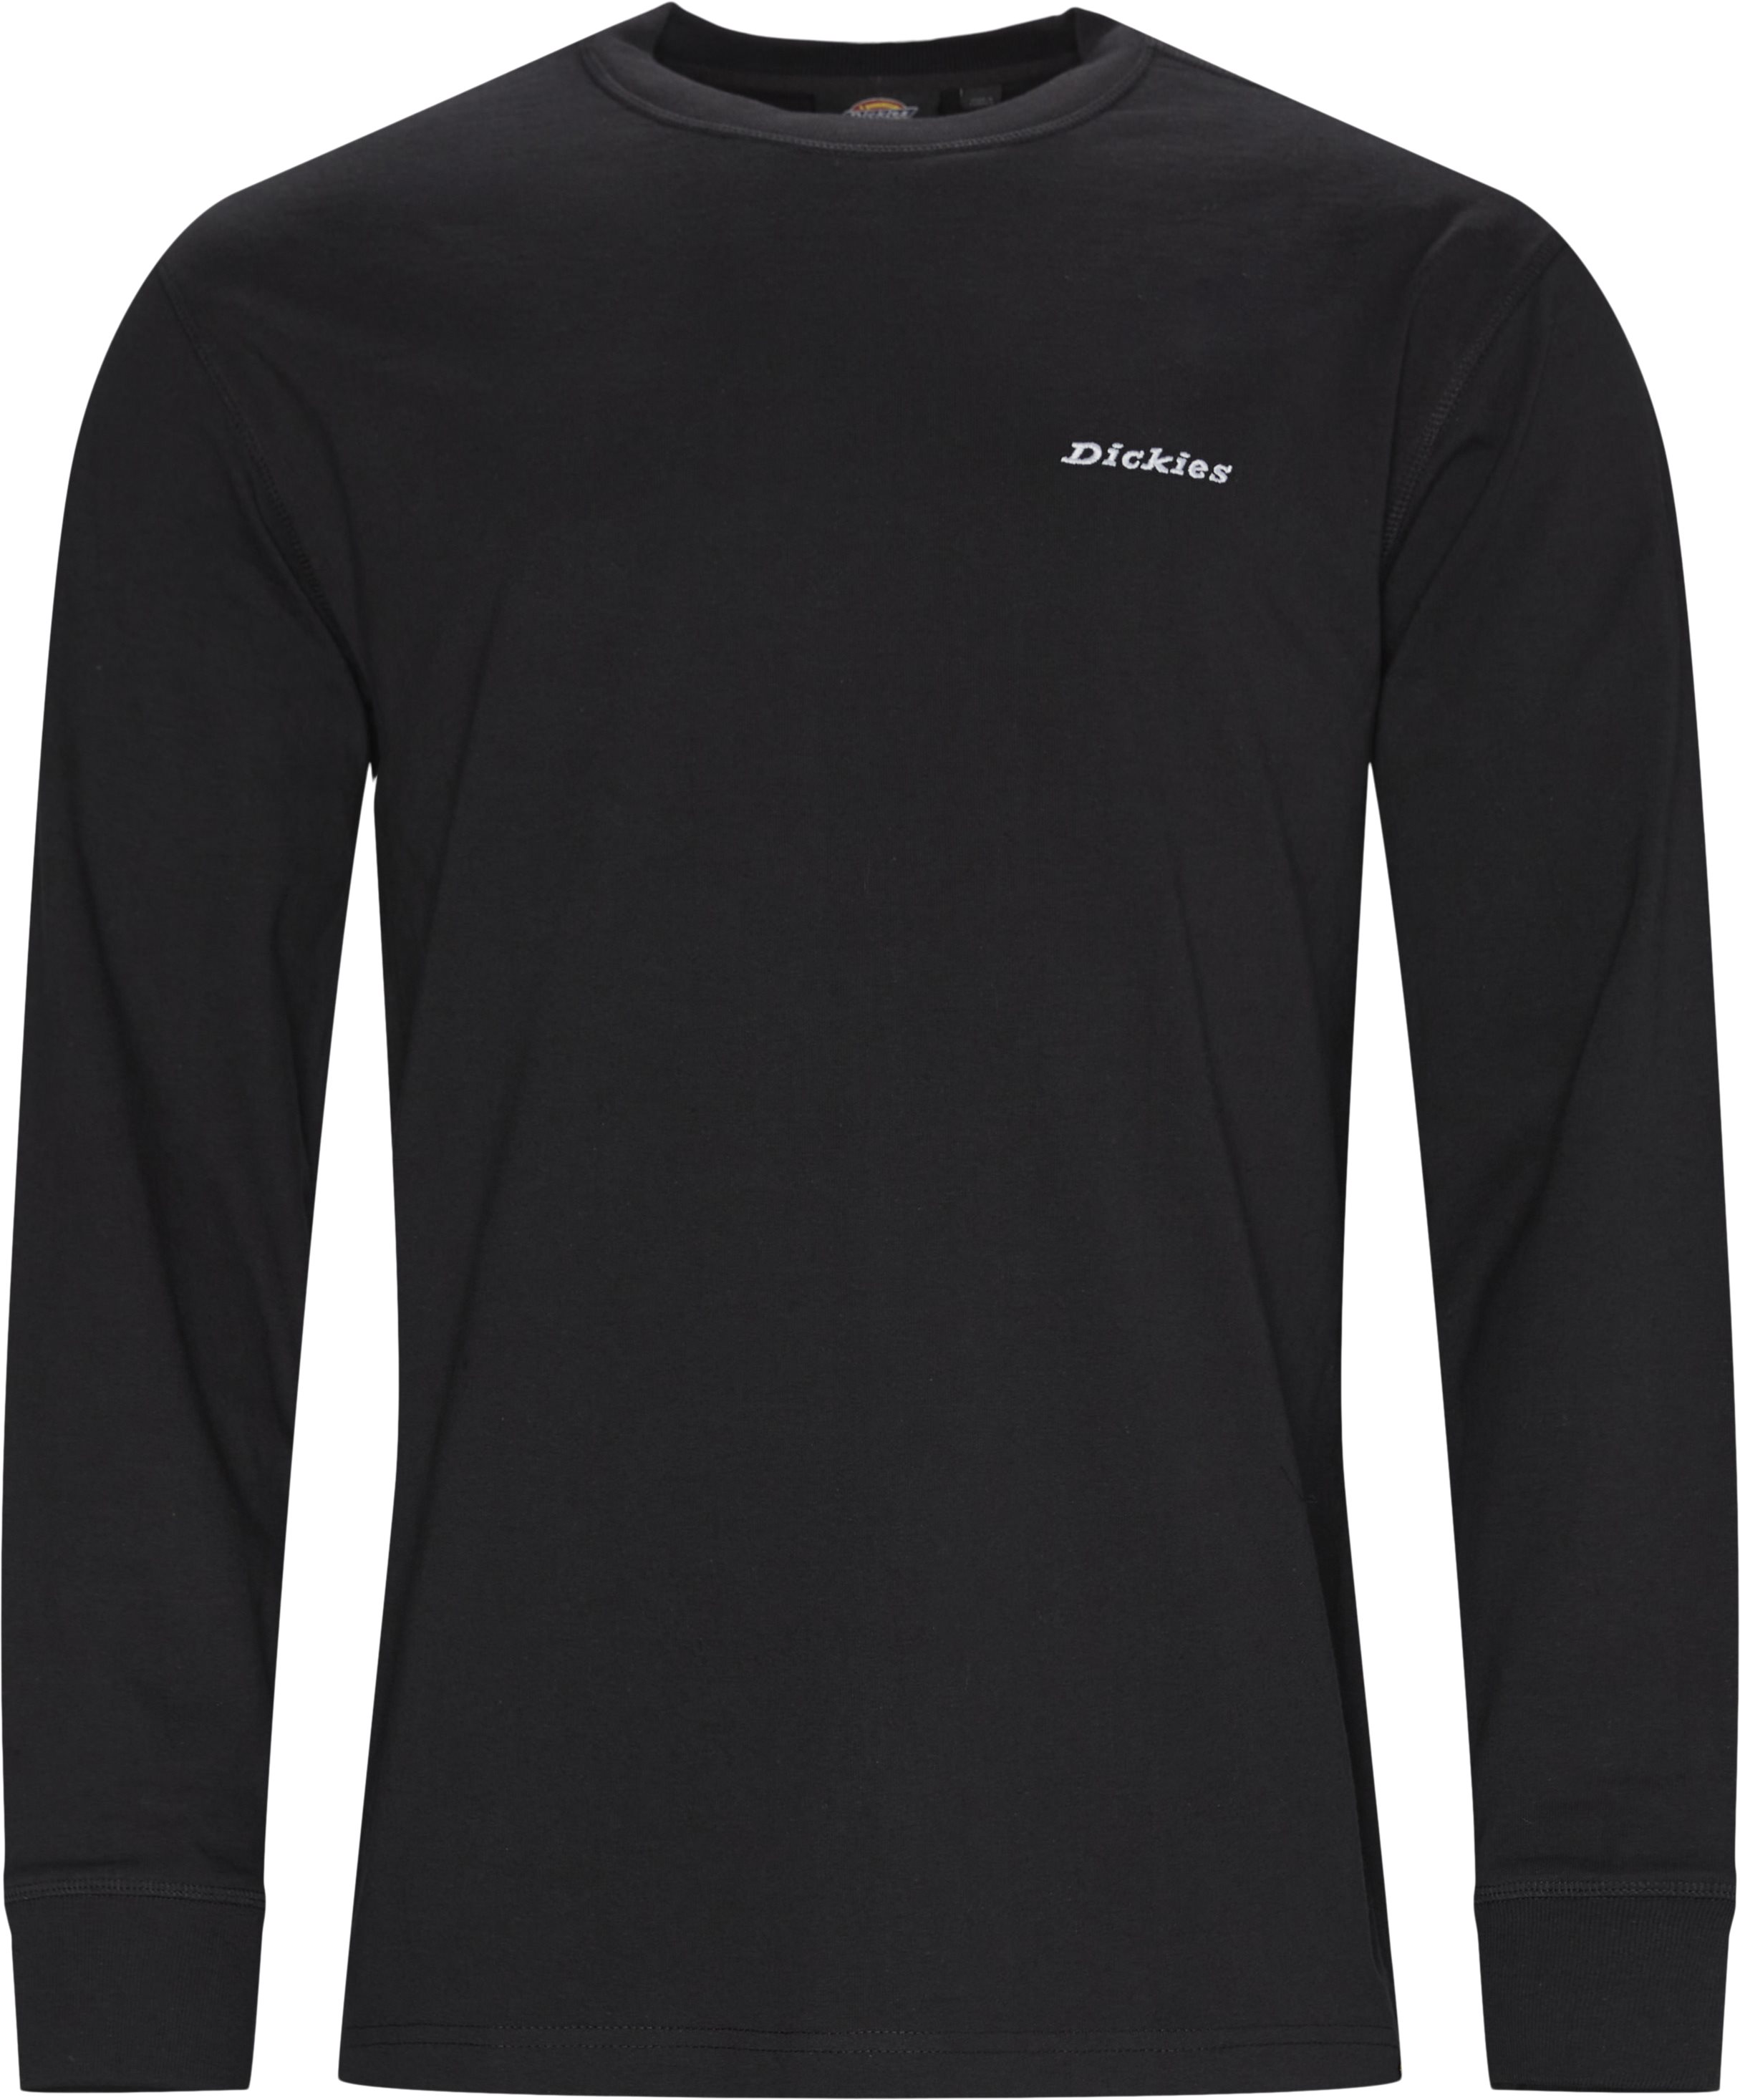 LS Loretto Langærmet T-shirt - T-shirts - Regular fit - Sort